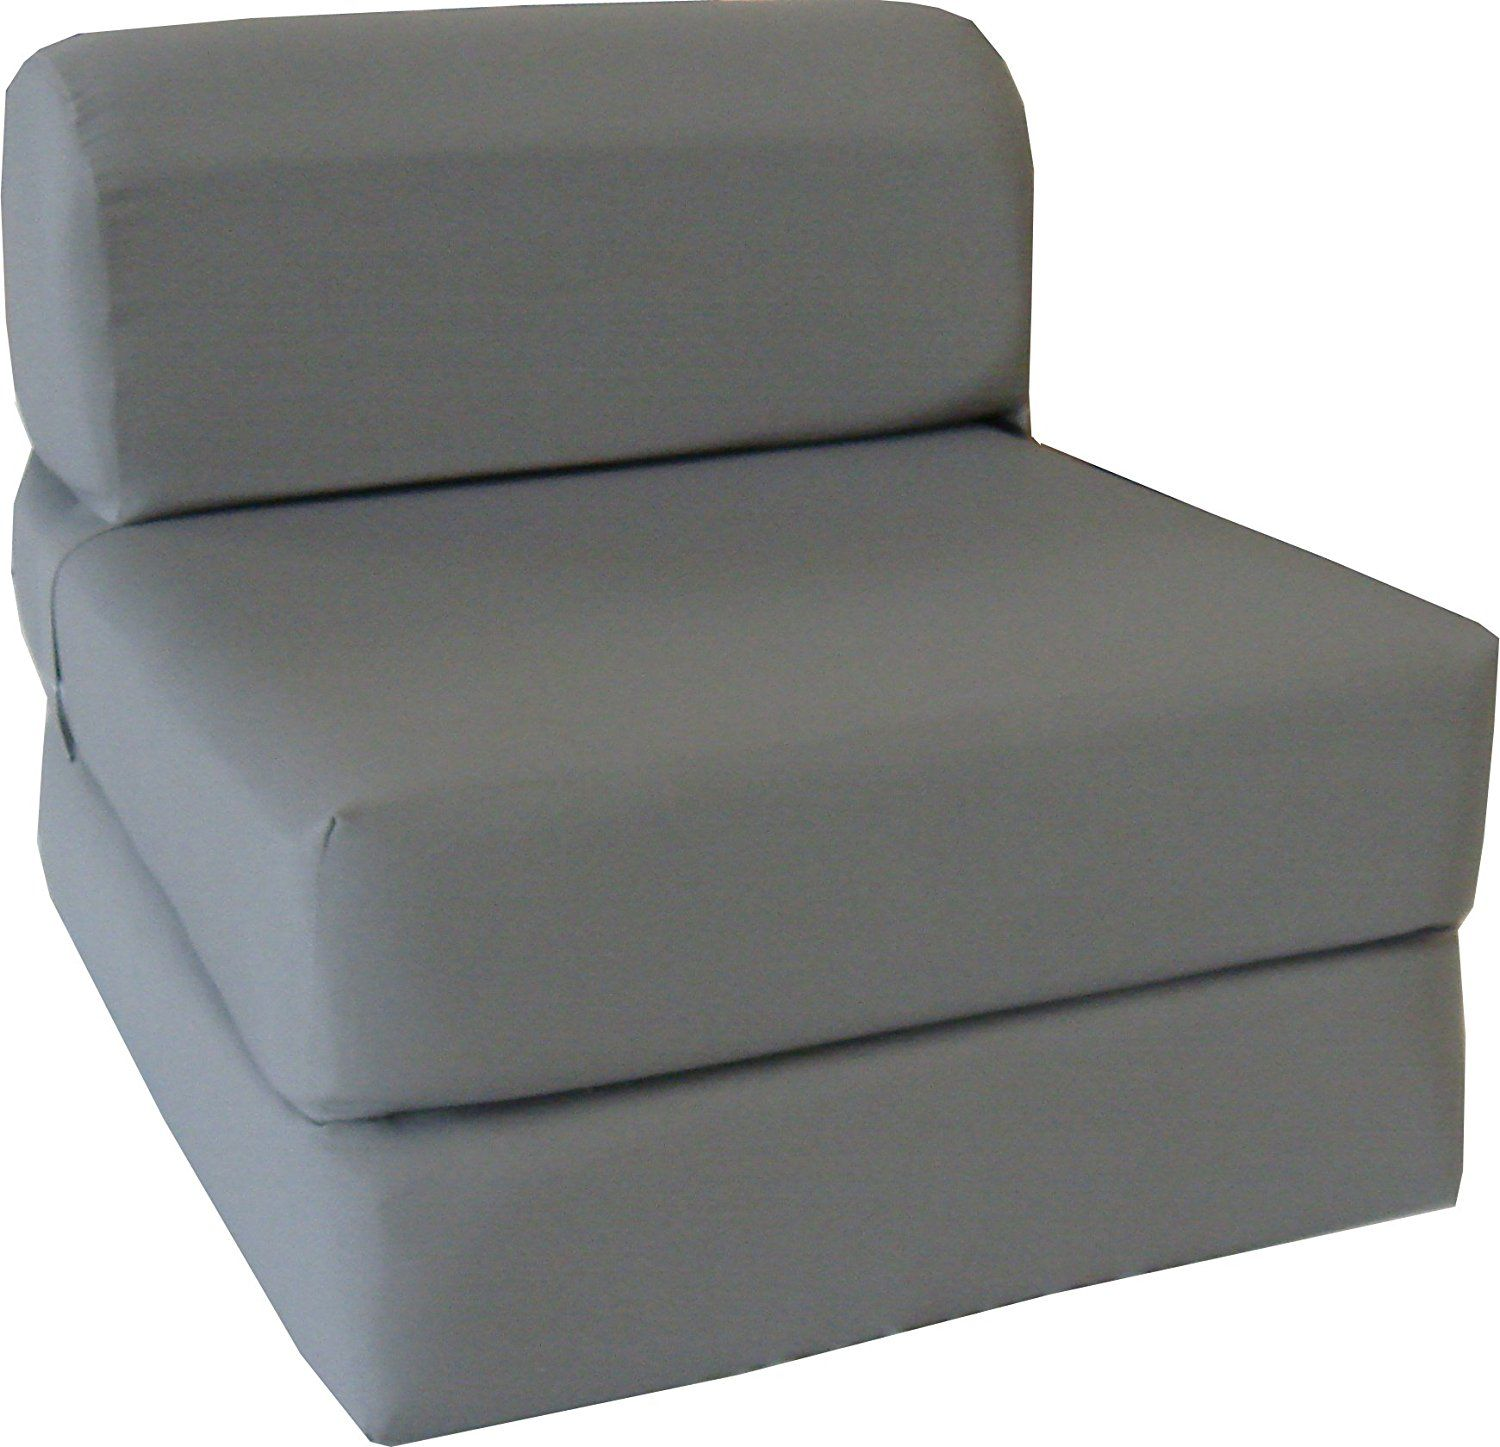 inspirational folding mattress sofa concept-Cute Folding Mattress sofa Architecture